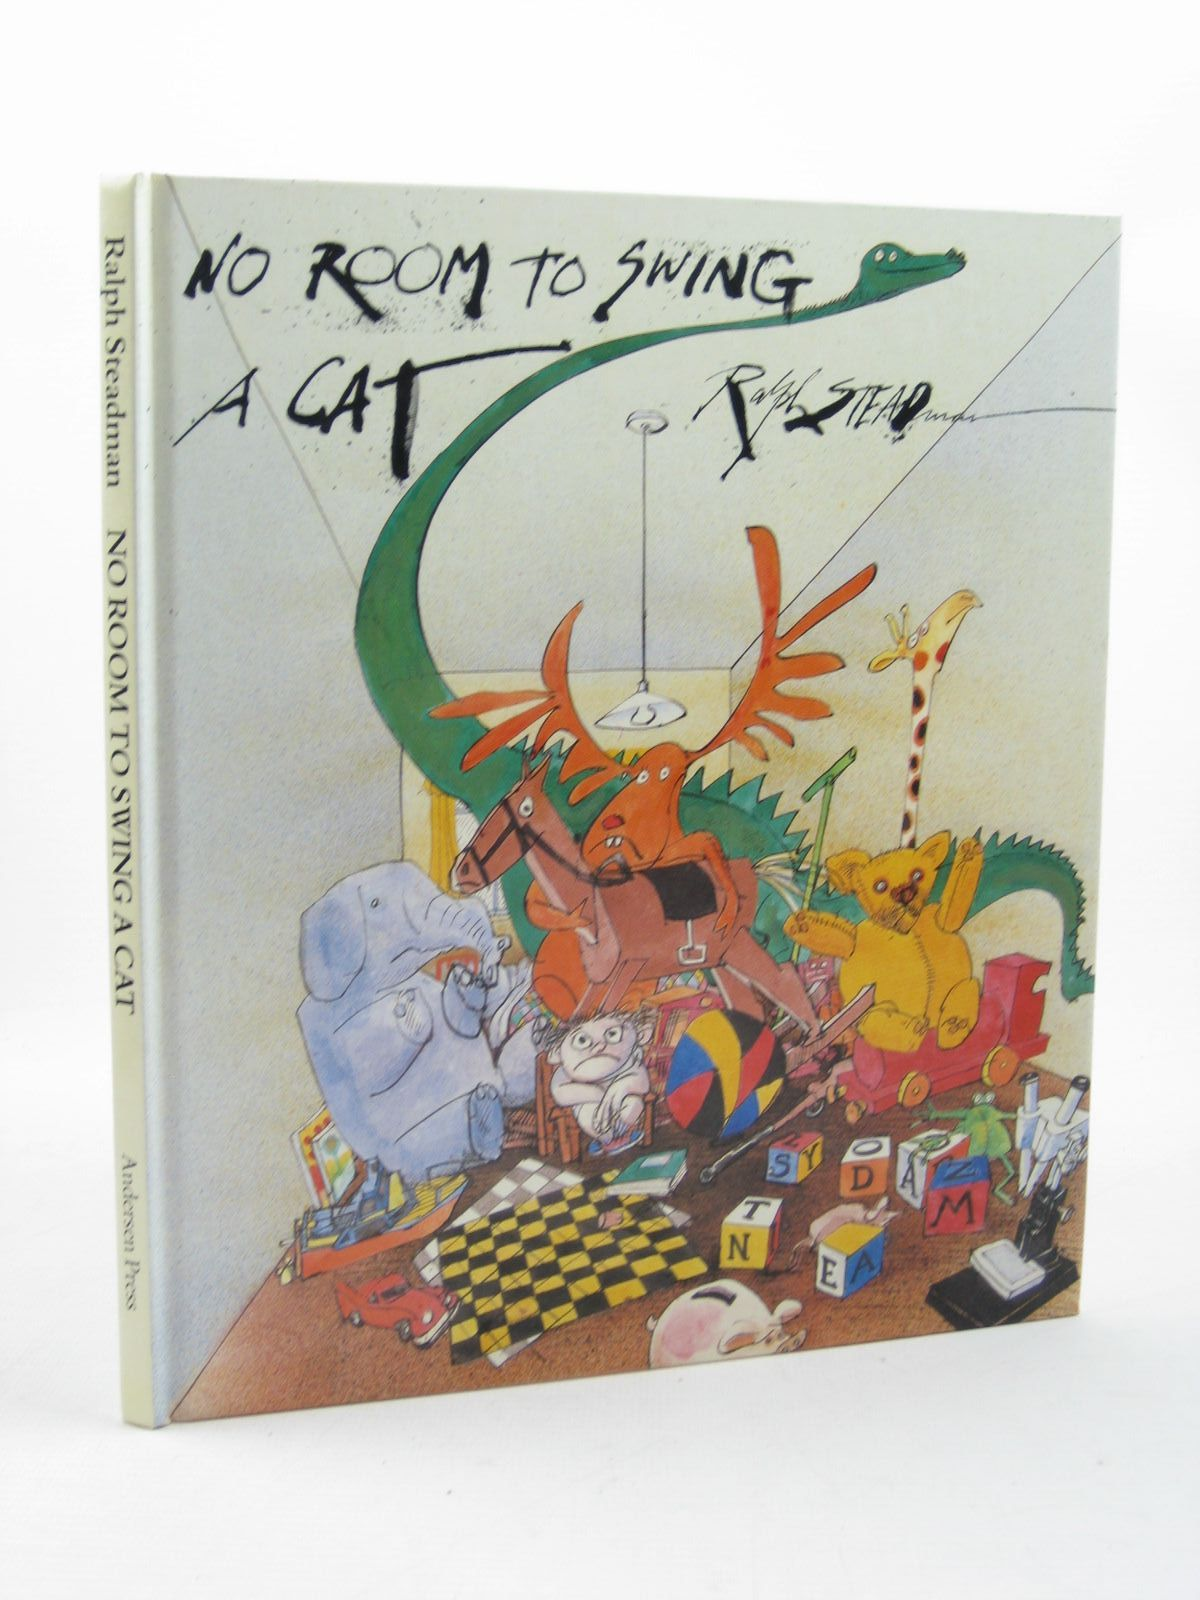 Photo of NO ROOM TO SWING A CAT written by Steadman, Ralph illustrated by Steadman, Ralph published by Andersen Press Ltd. (STOCK CODE: 1312693)  for sale by Stella & Rose's Books